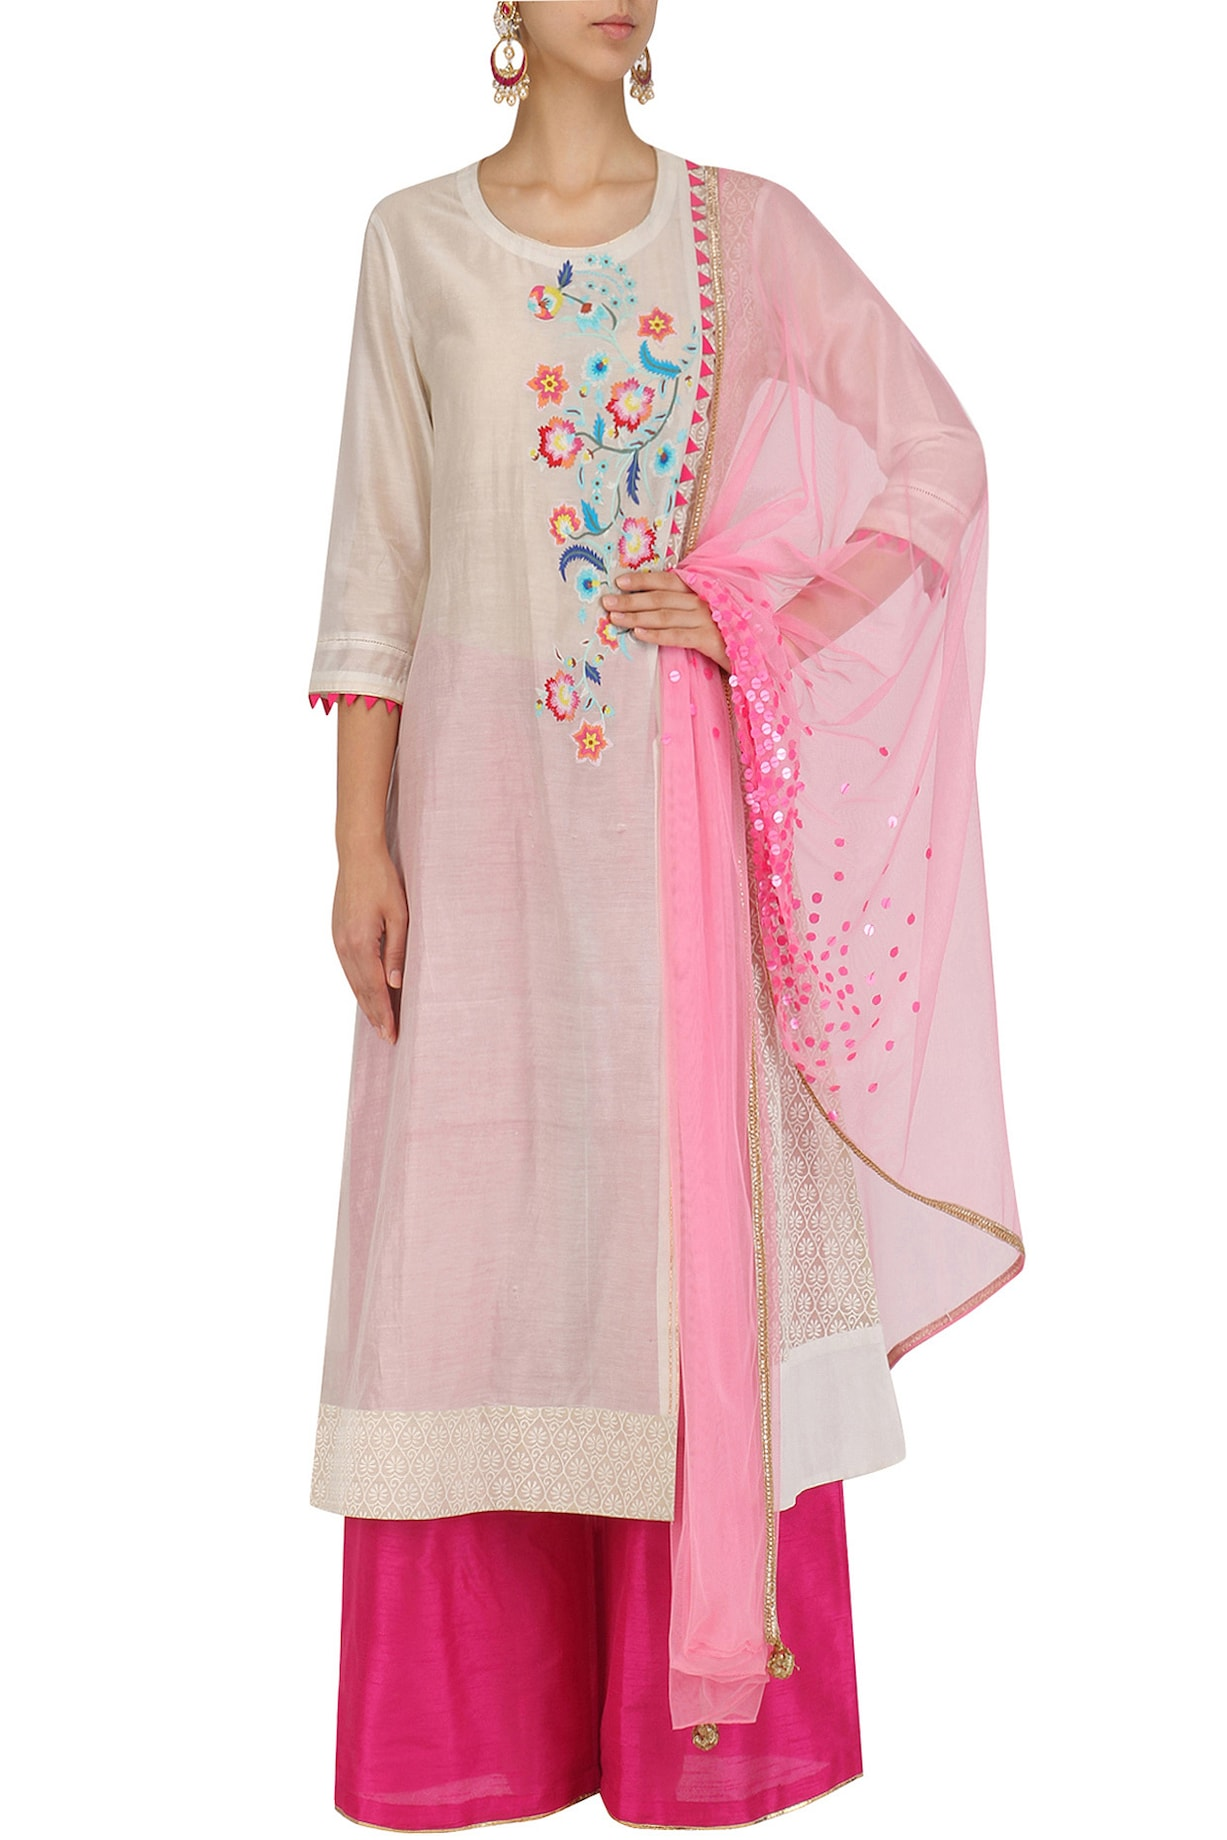 Breathe By Aakanksha Singh Kurta Sets